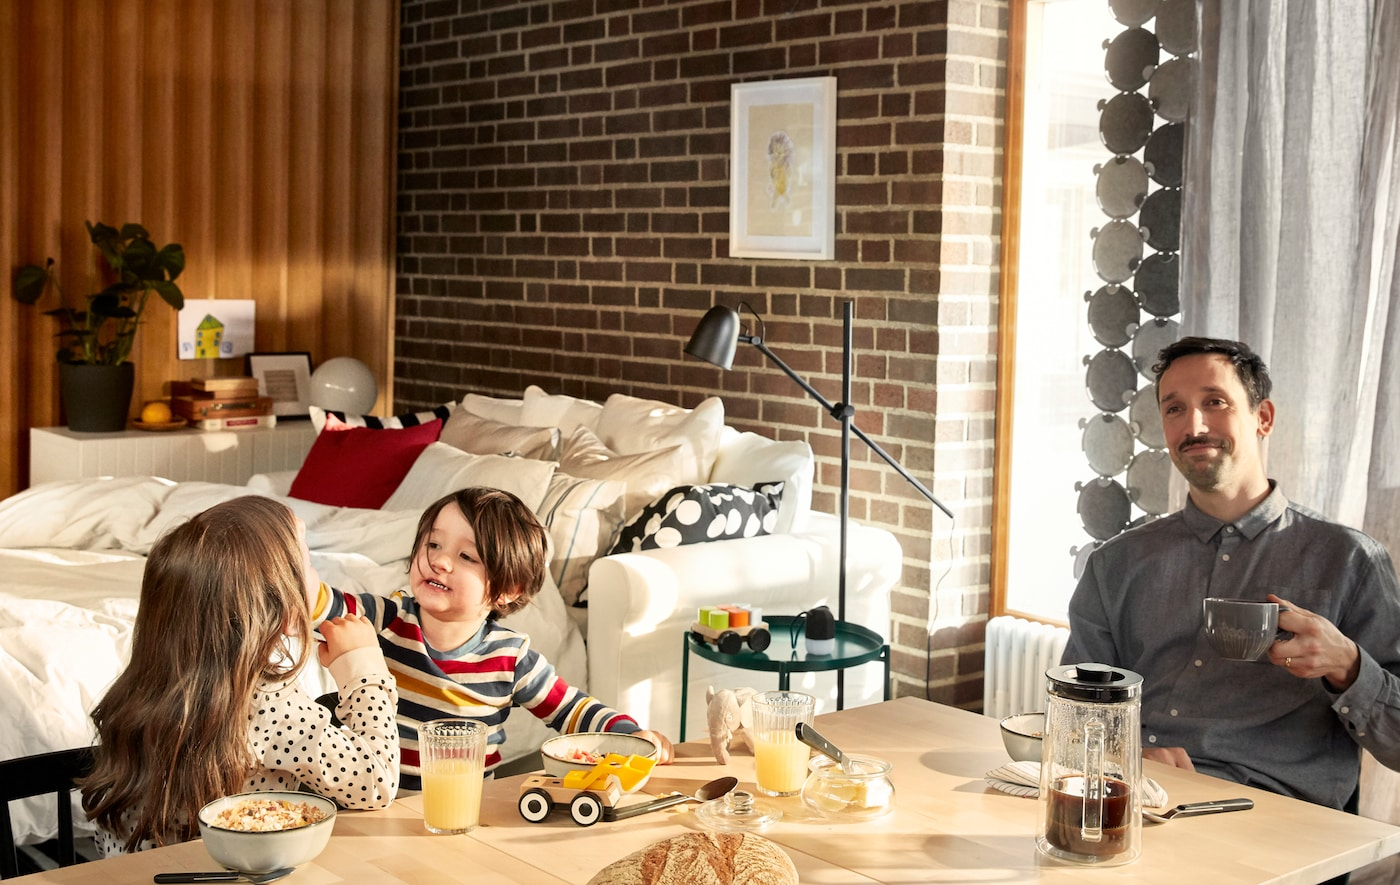 A father sits serenely at the breakfast table drinking coffee while his two children play with their food beside him.